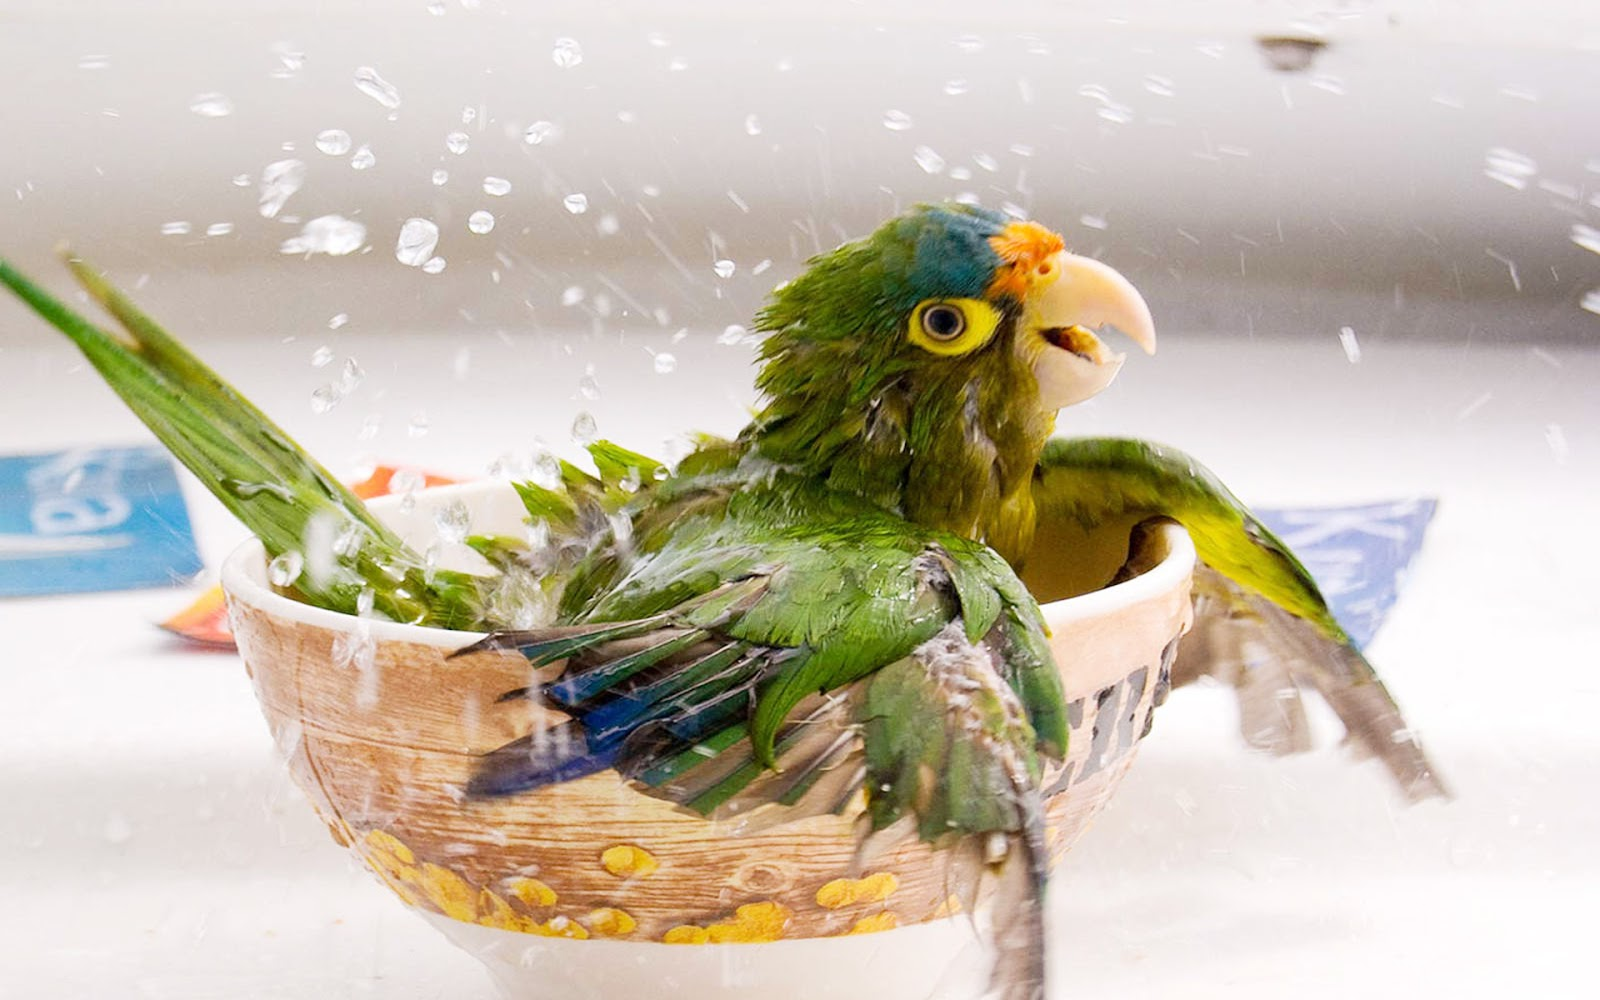 Animal Wallpapers Desktop Images Free Wallpapers Cute: Lovely Wallpapers: Little Cute Animals Wallpapers 2013